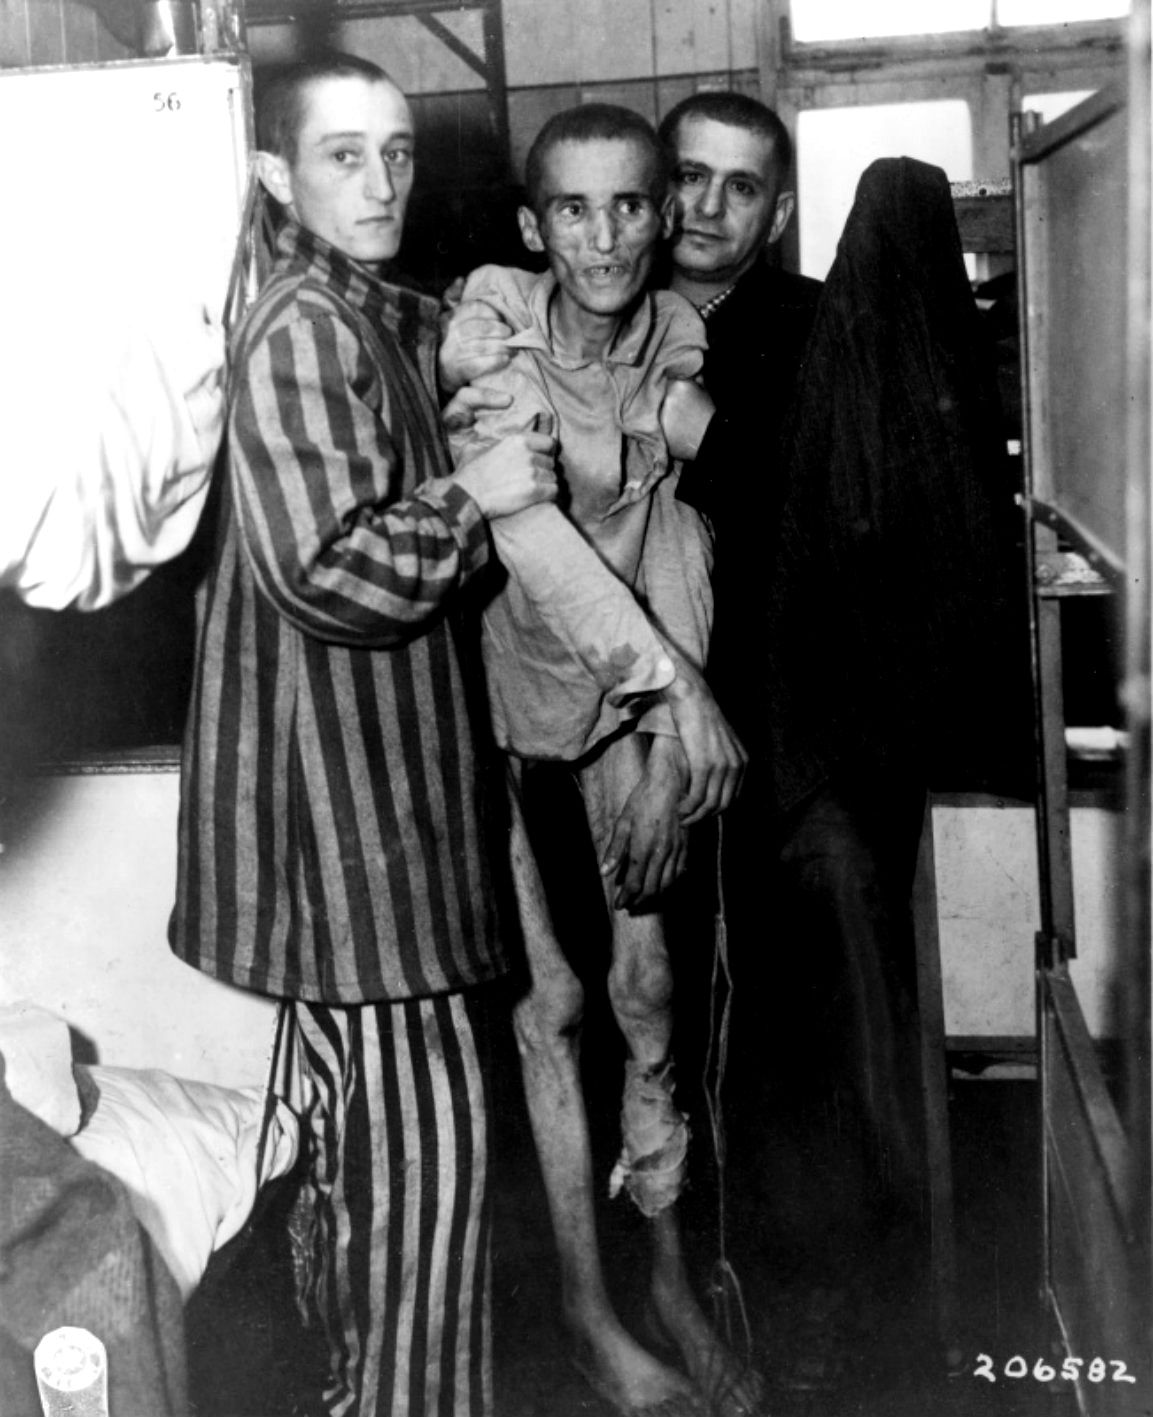 A 23-year-old Czech inmate at Flossenbürg concentration camp, recently liberated by the elements U.S. Army's 2d Stryker Cavalry Regiment, 90th Infantry Division and 97th Infantry Division, is held aloft by fellow internees, suffering from severe...